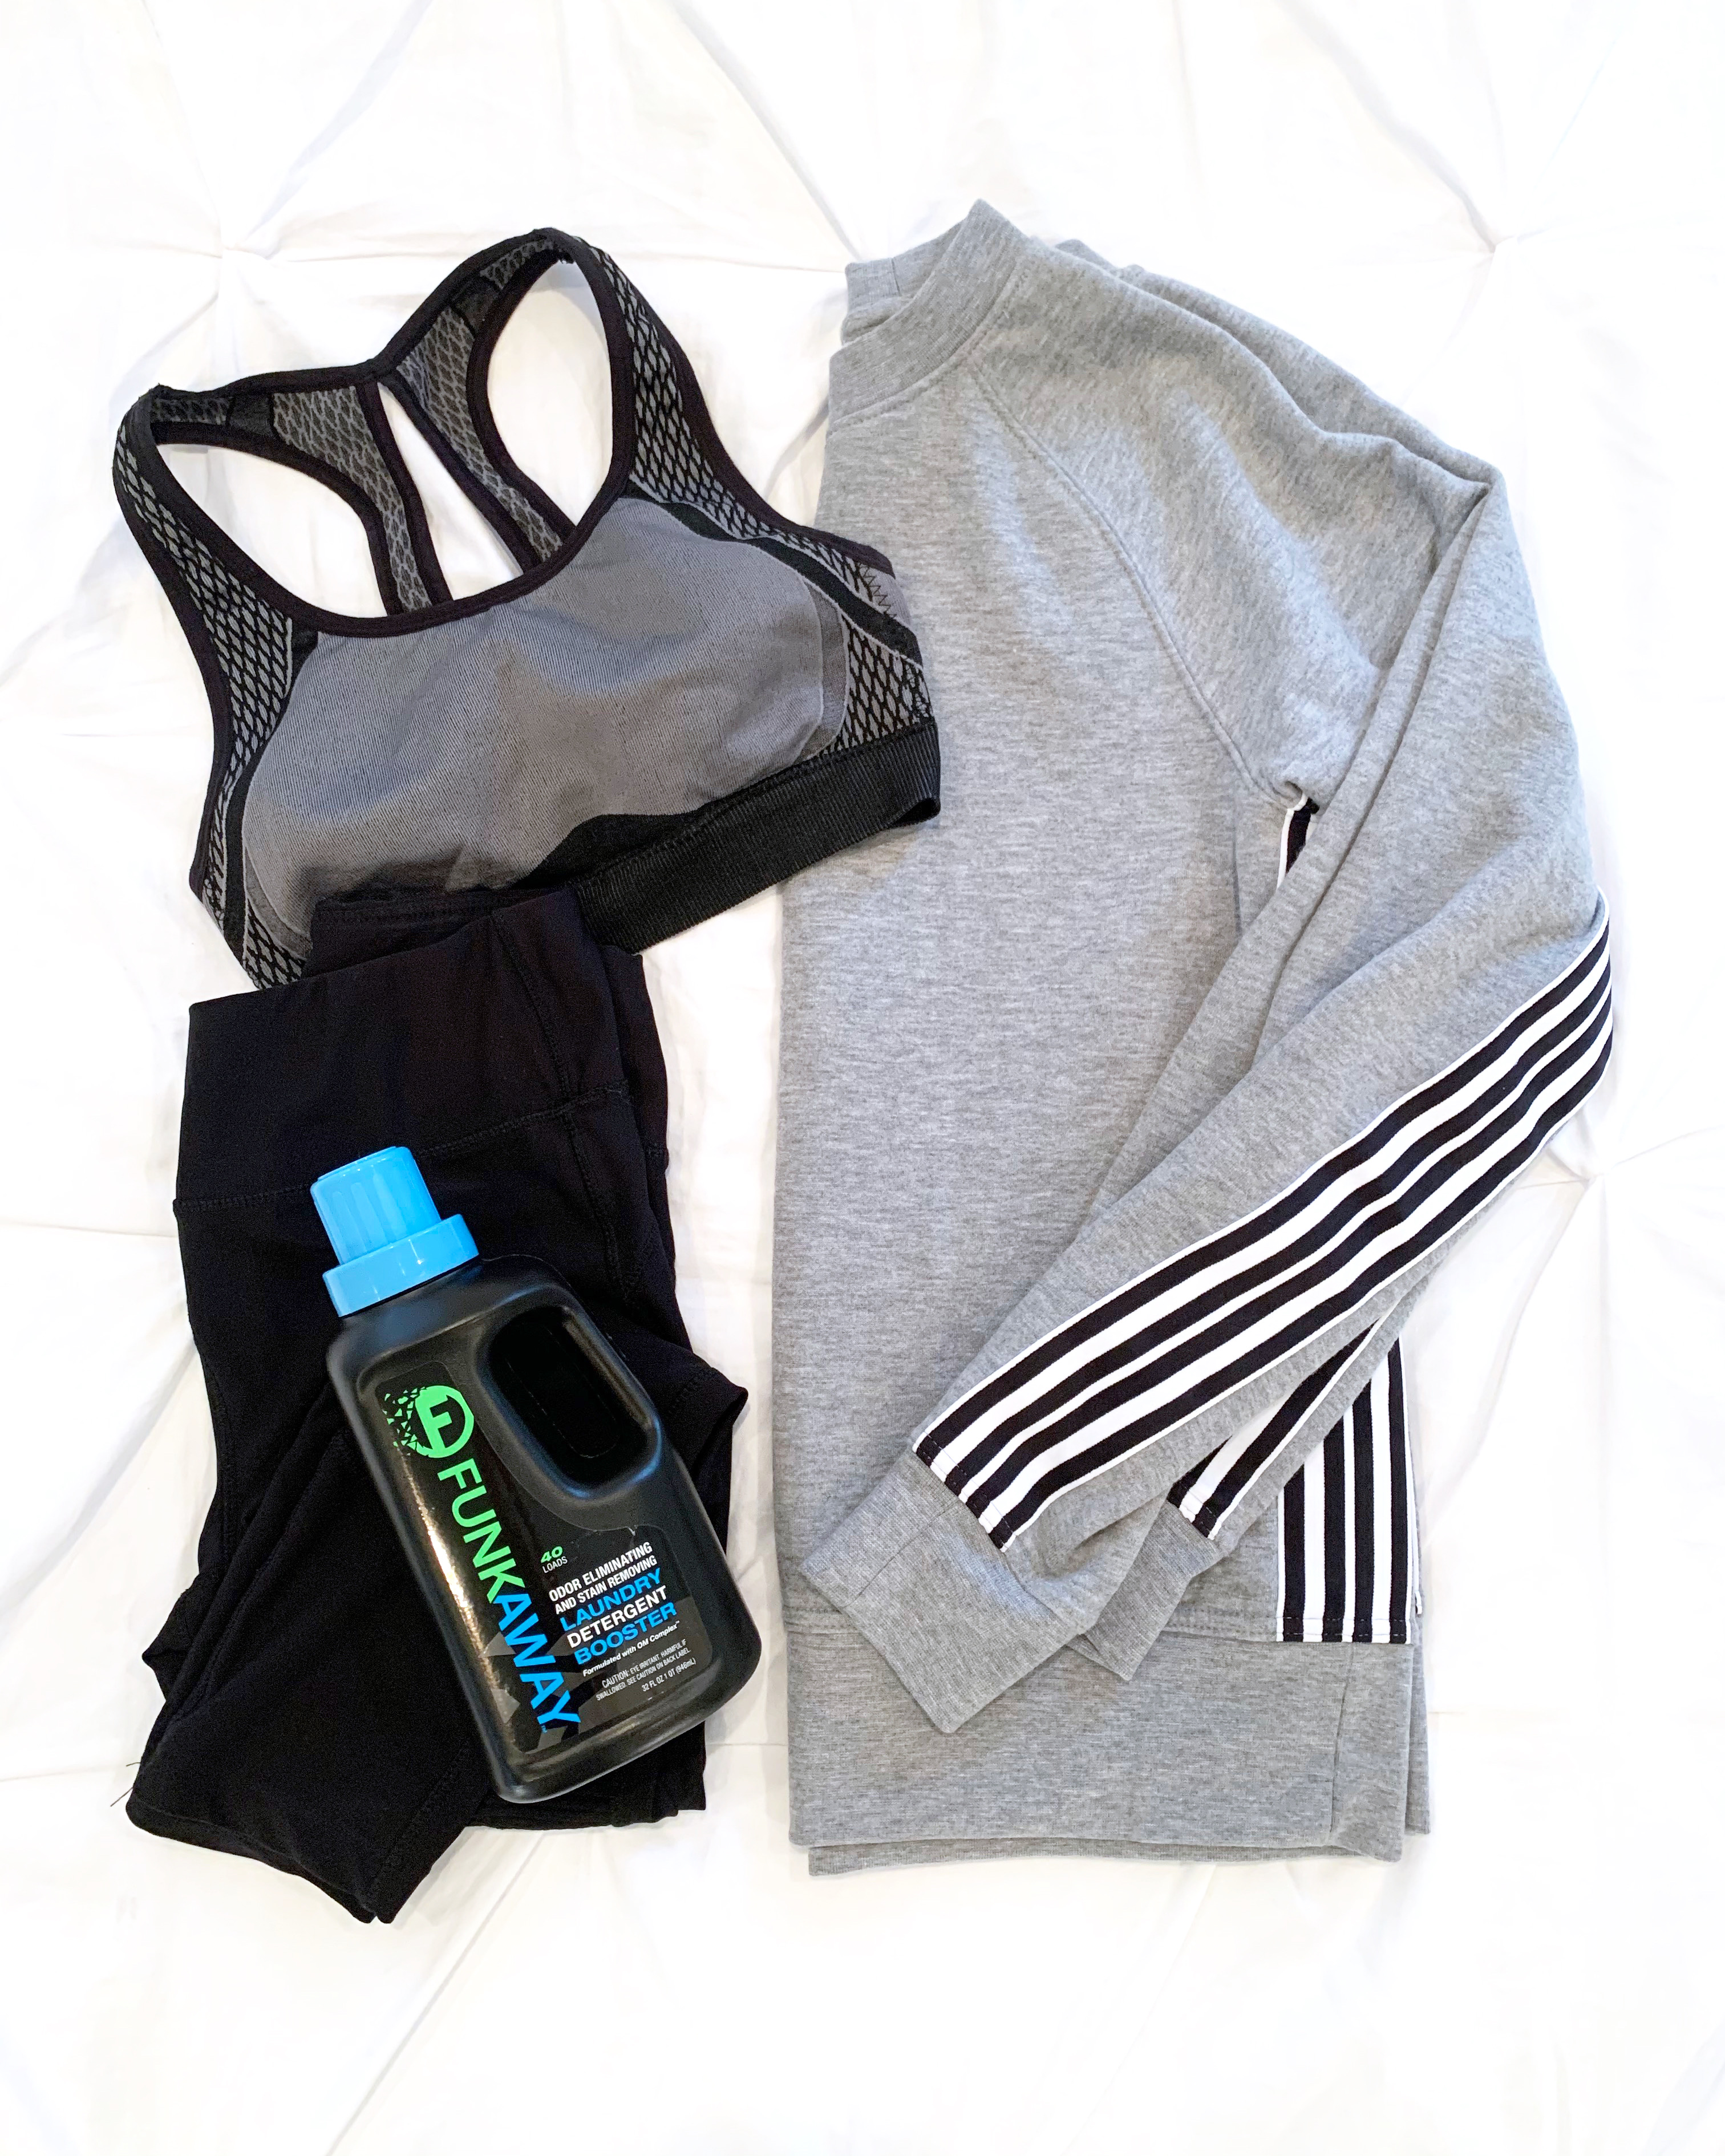 funkaway laundry booster with workout clothes